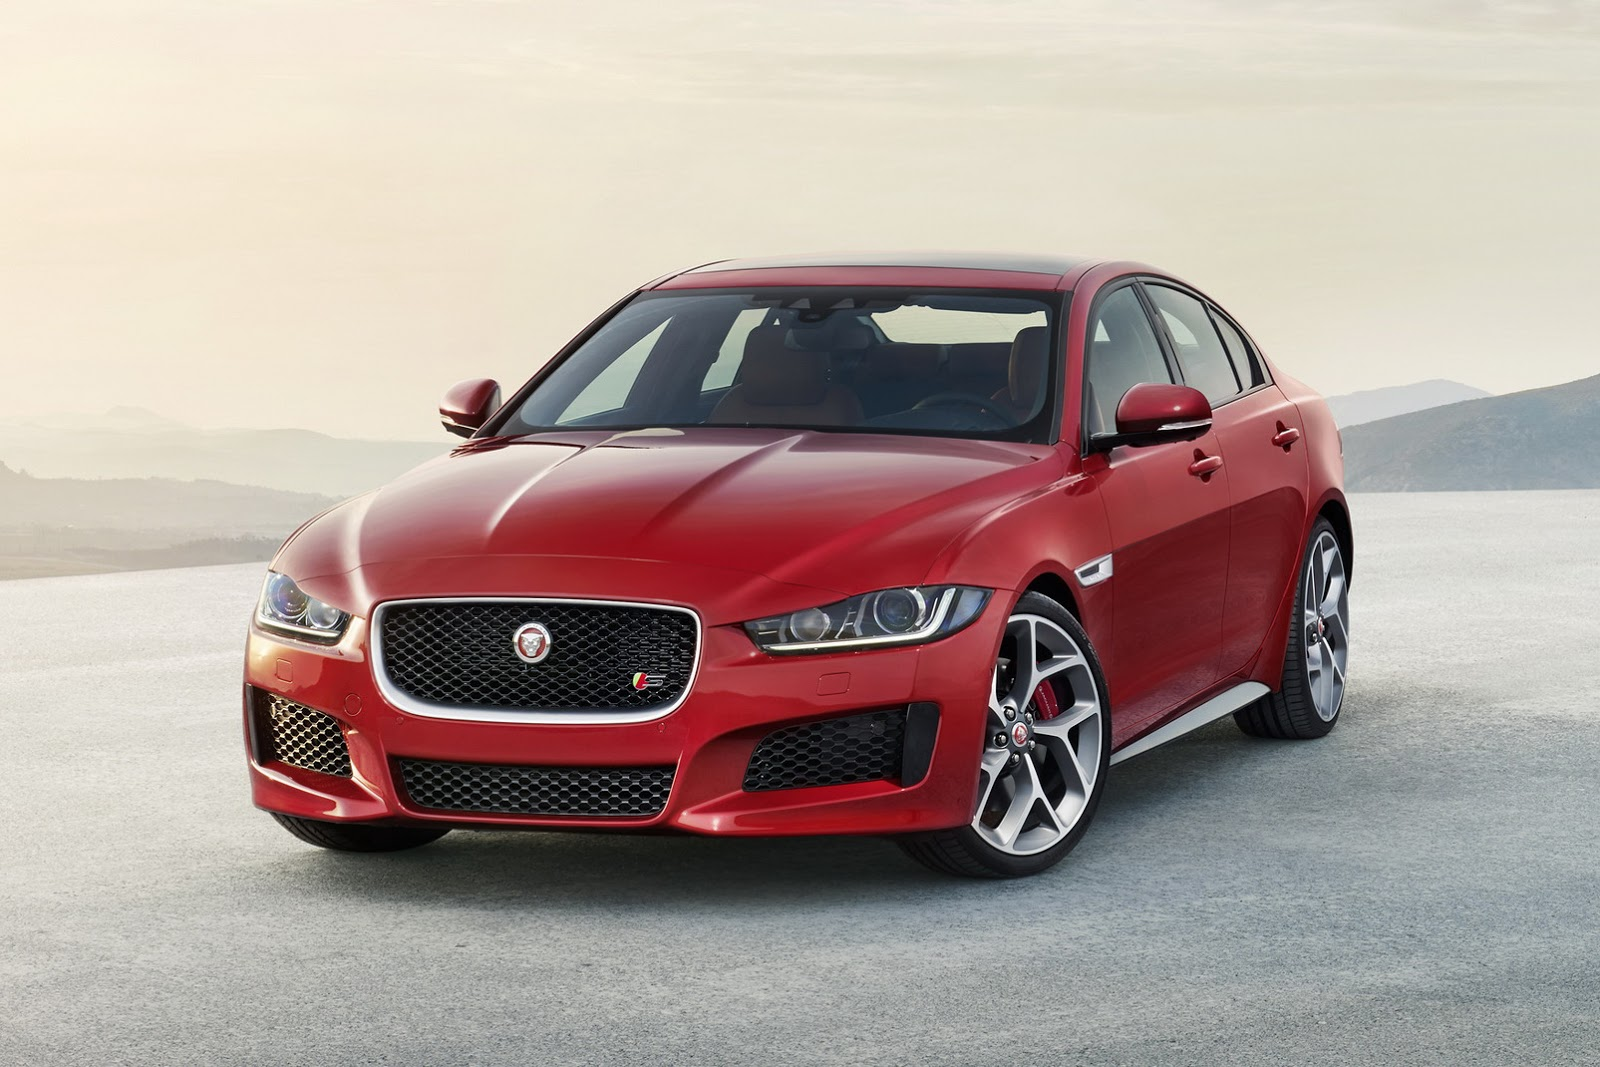 New-2016-Jaguar-XE-officially-revealed-Images-and-details-33